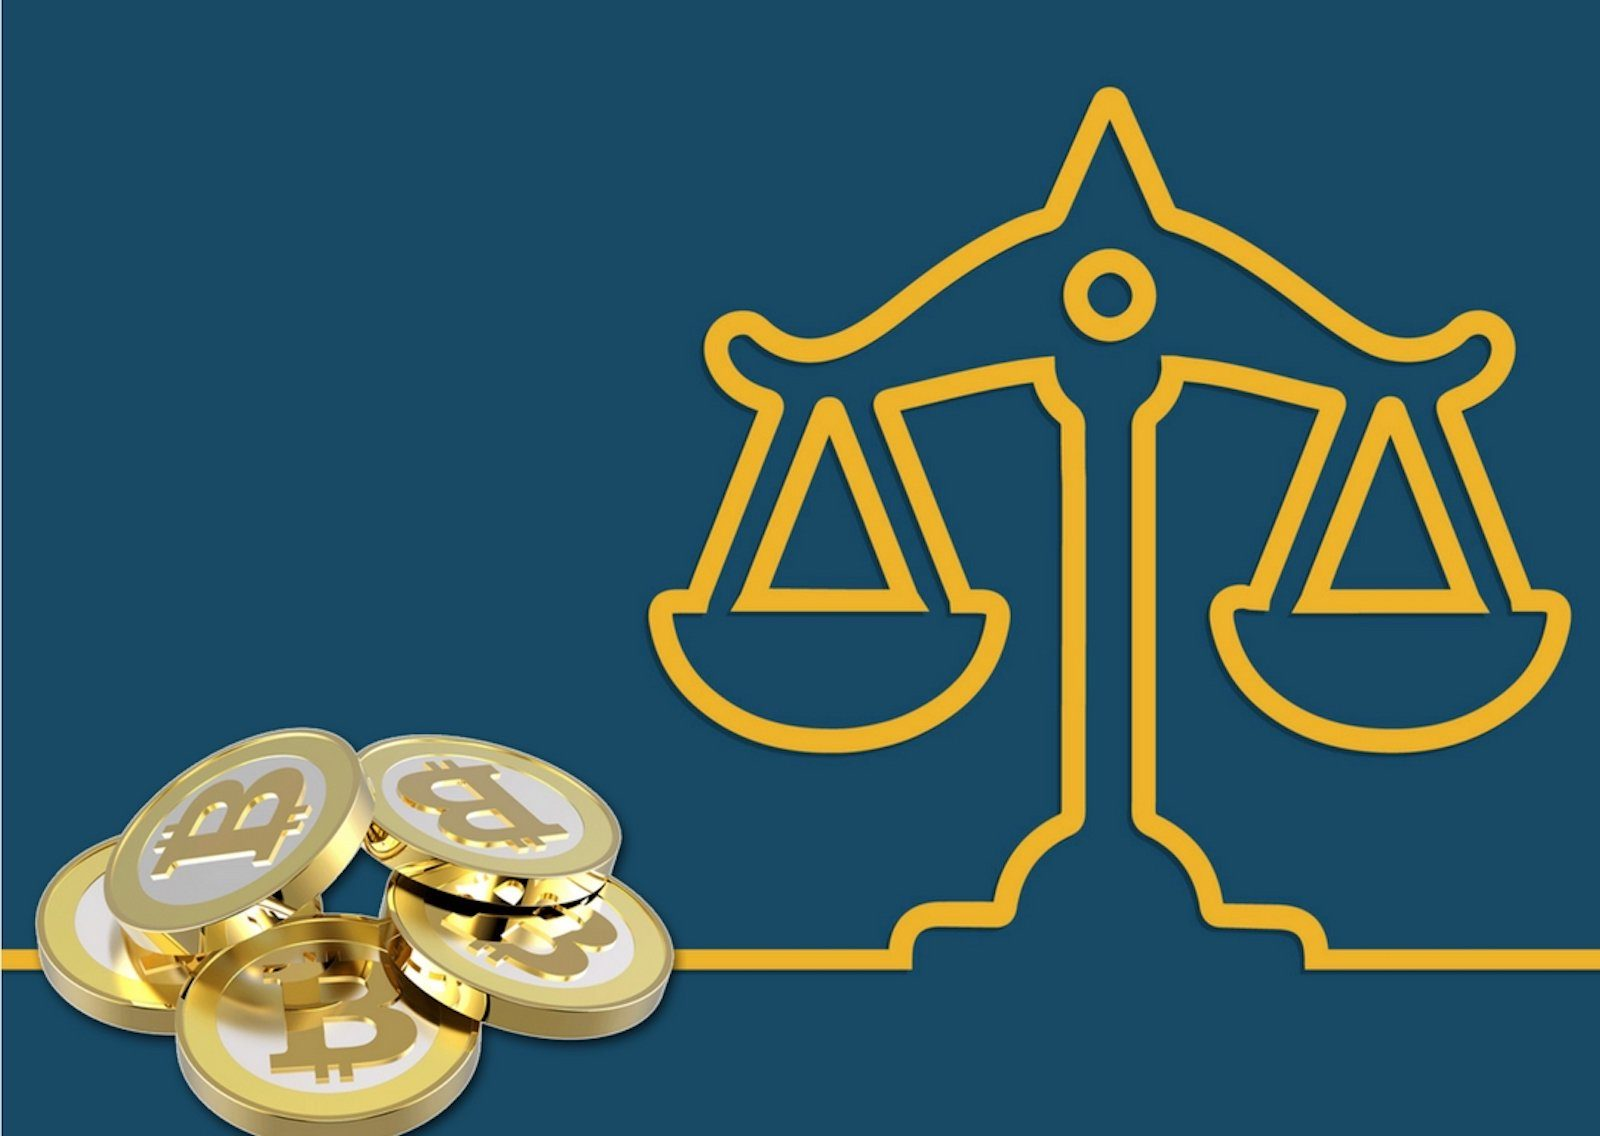 bitcoins next to cartoon image of law balance